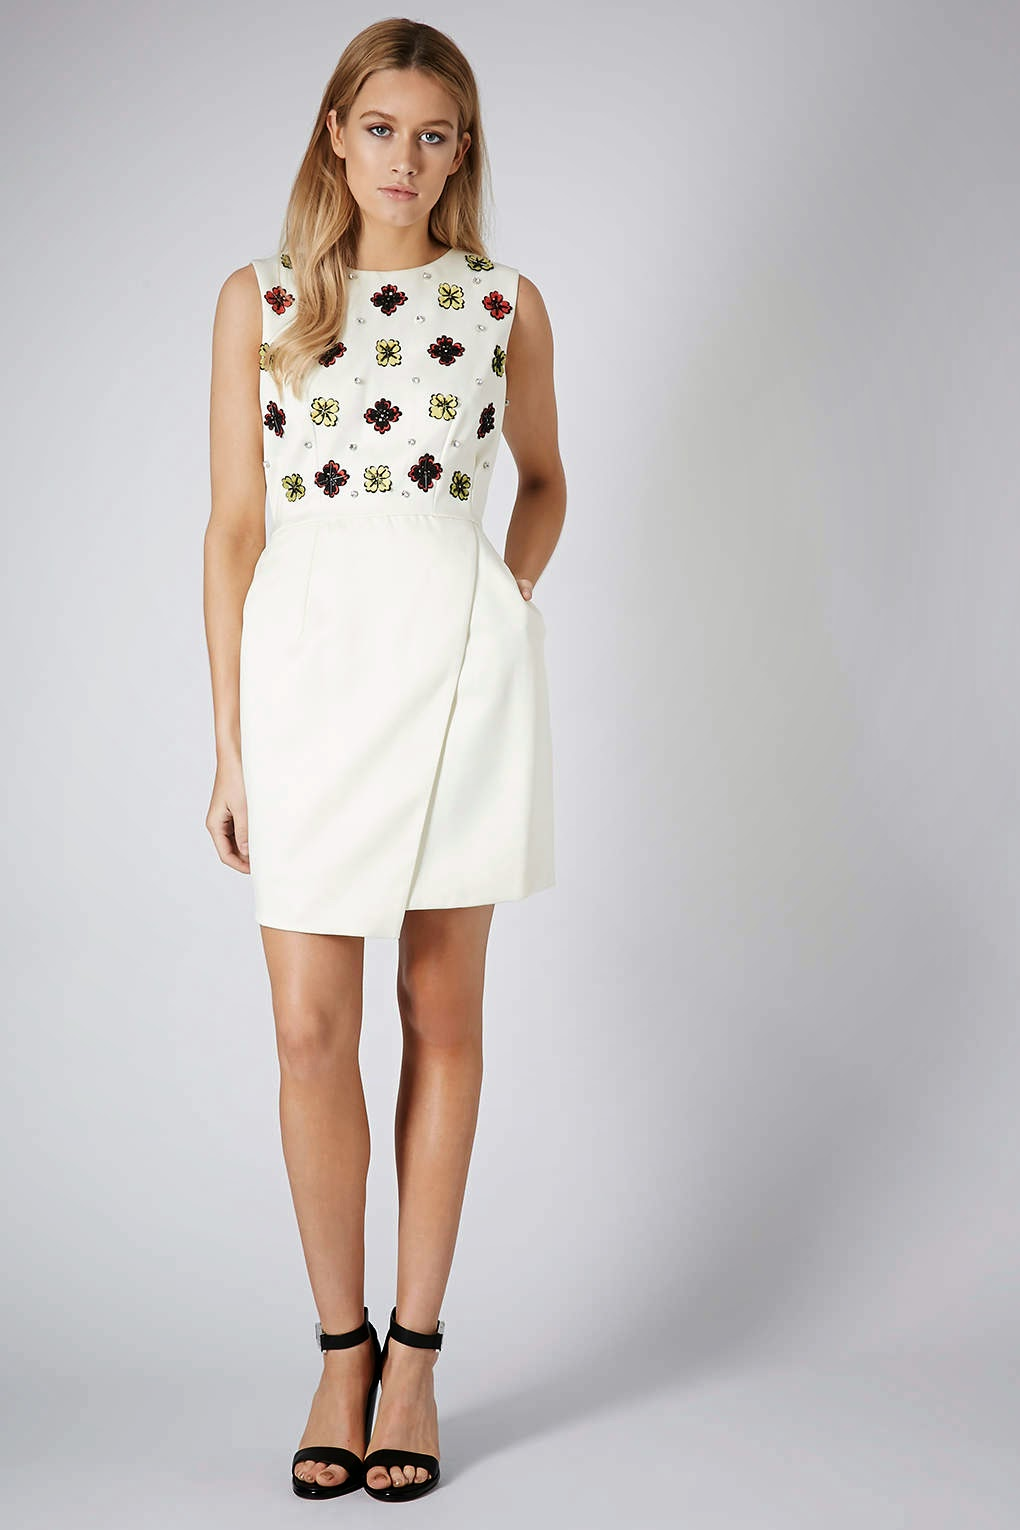 cream dress with pockets